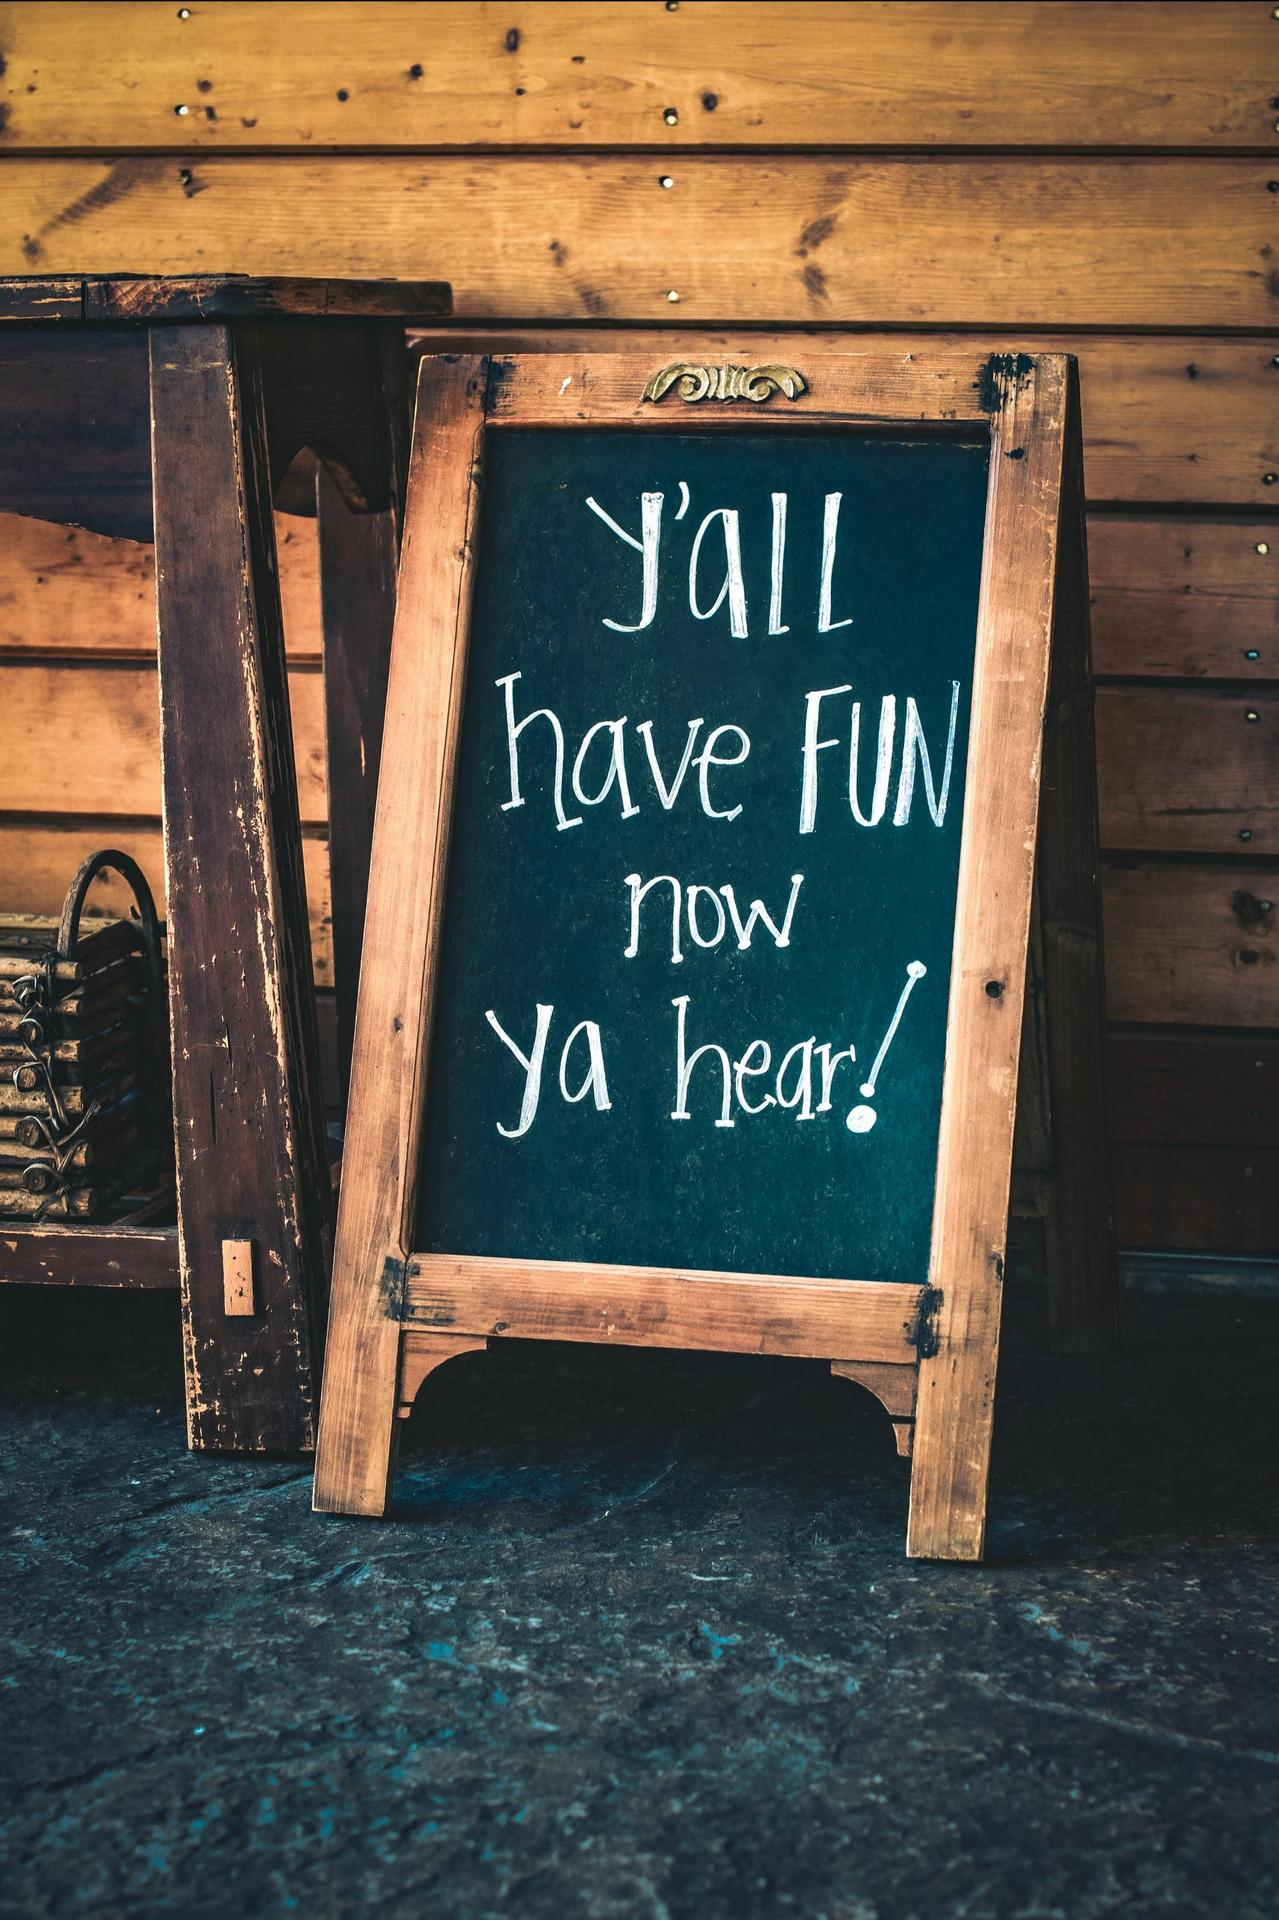 """Chalkboard with the message """"Y'all have fun now, ya hear!"""". By Tim Mossholder, via unsplash.com"""